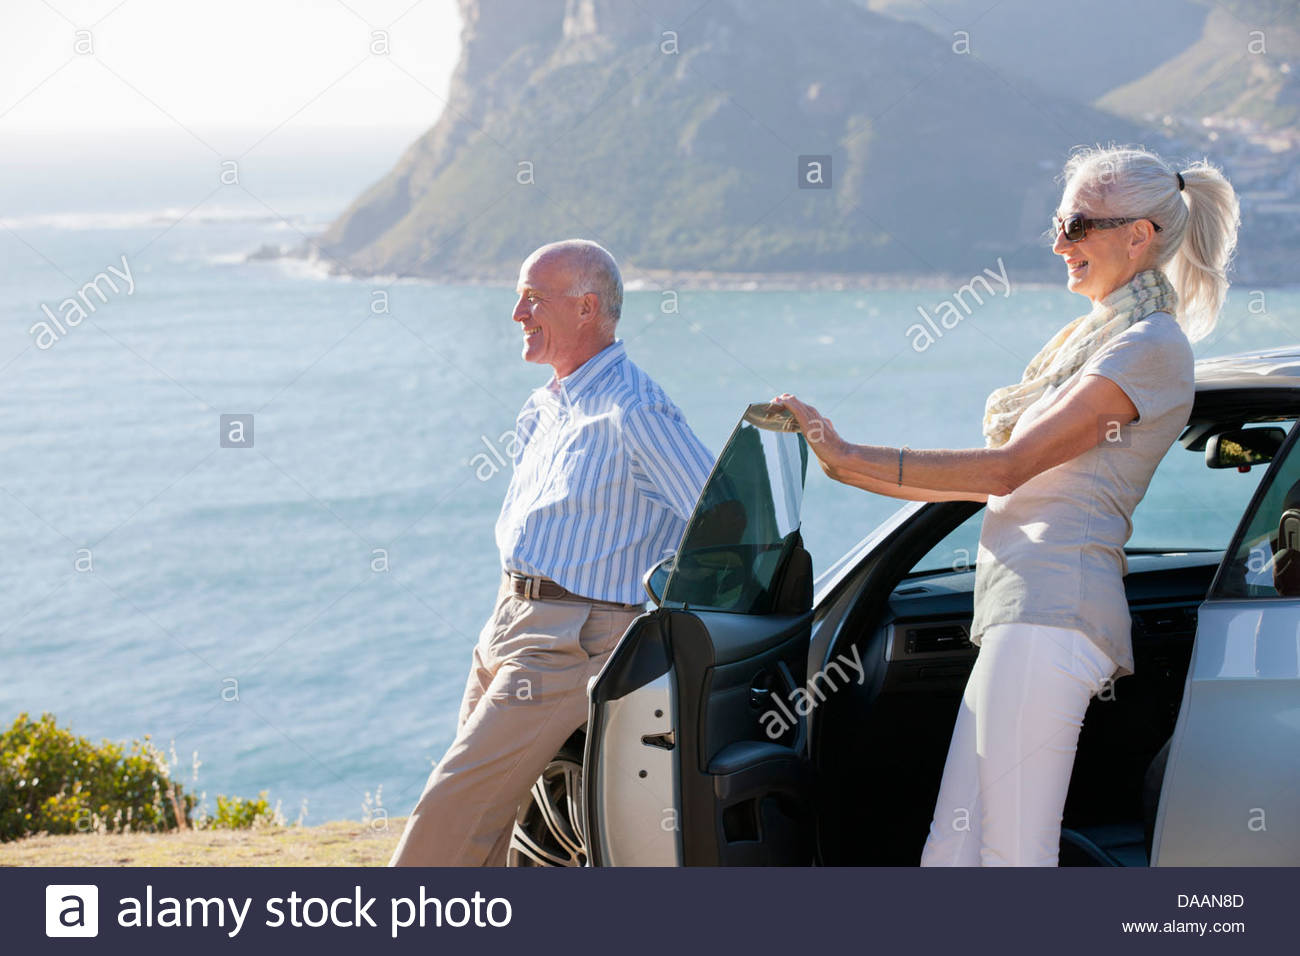 Couple looking at ocean view outside car - Stock Image